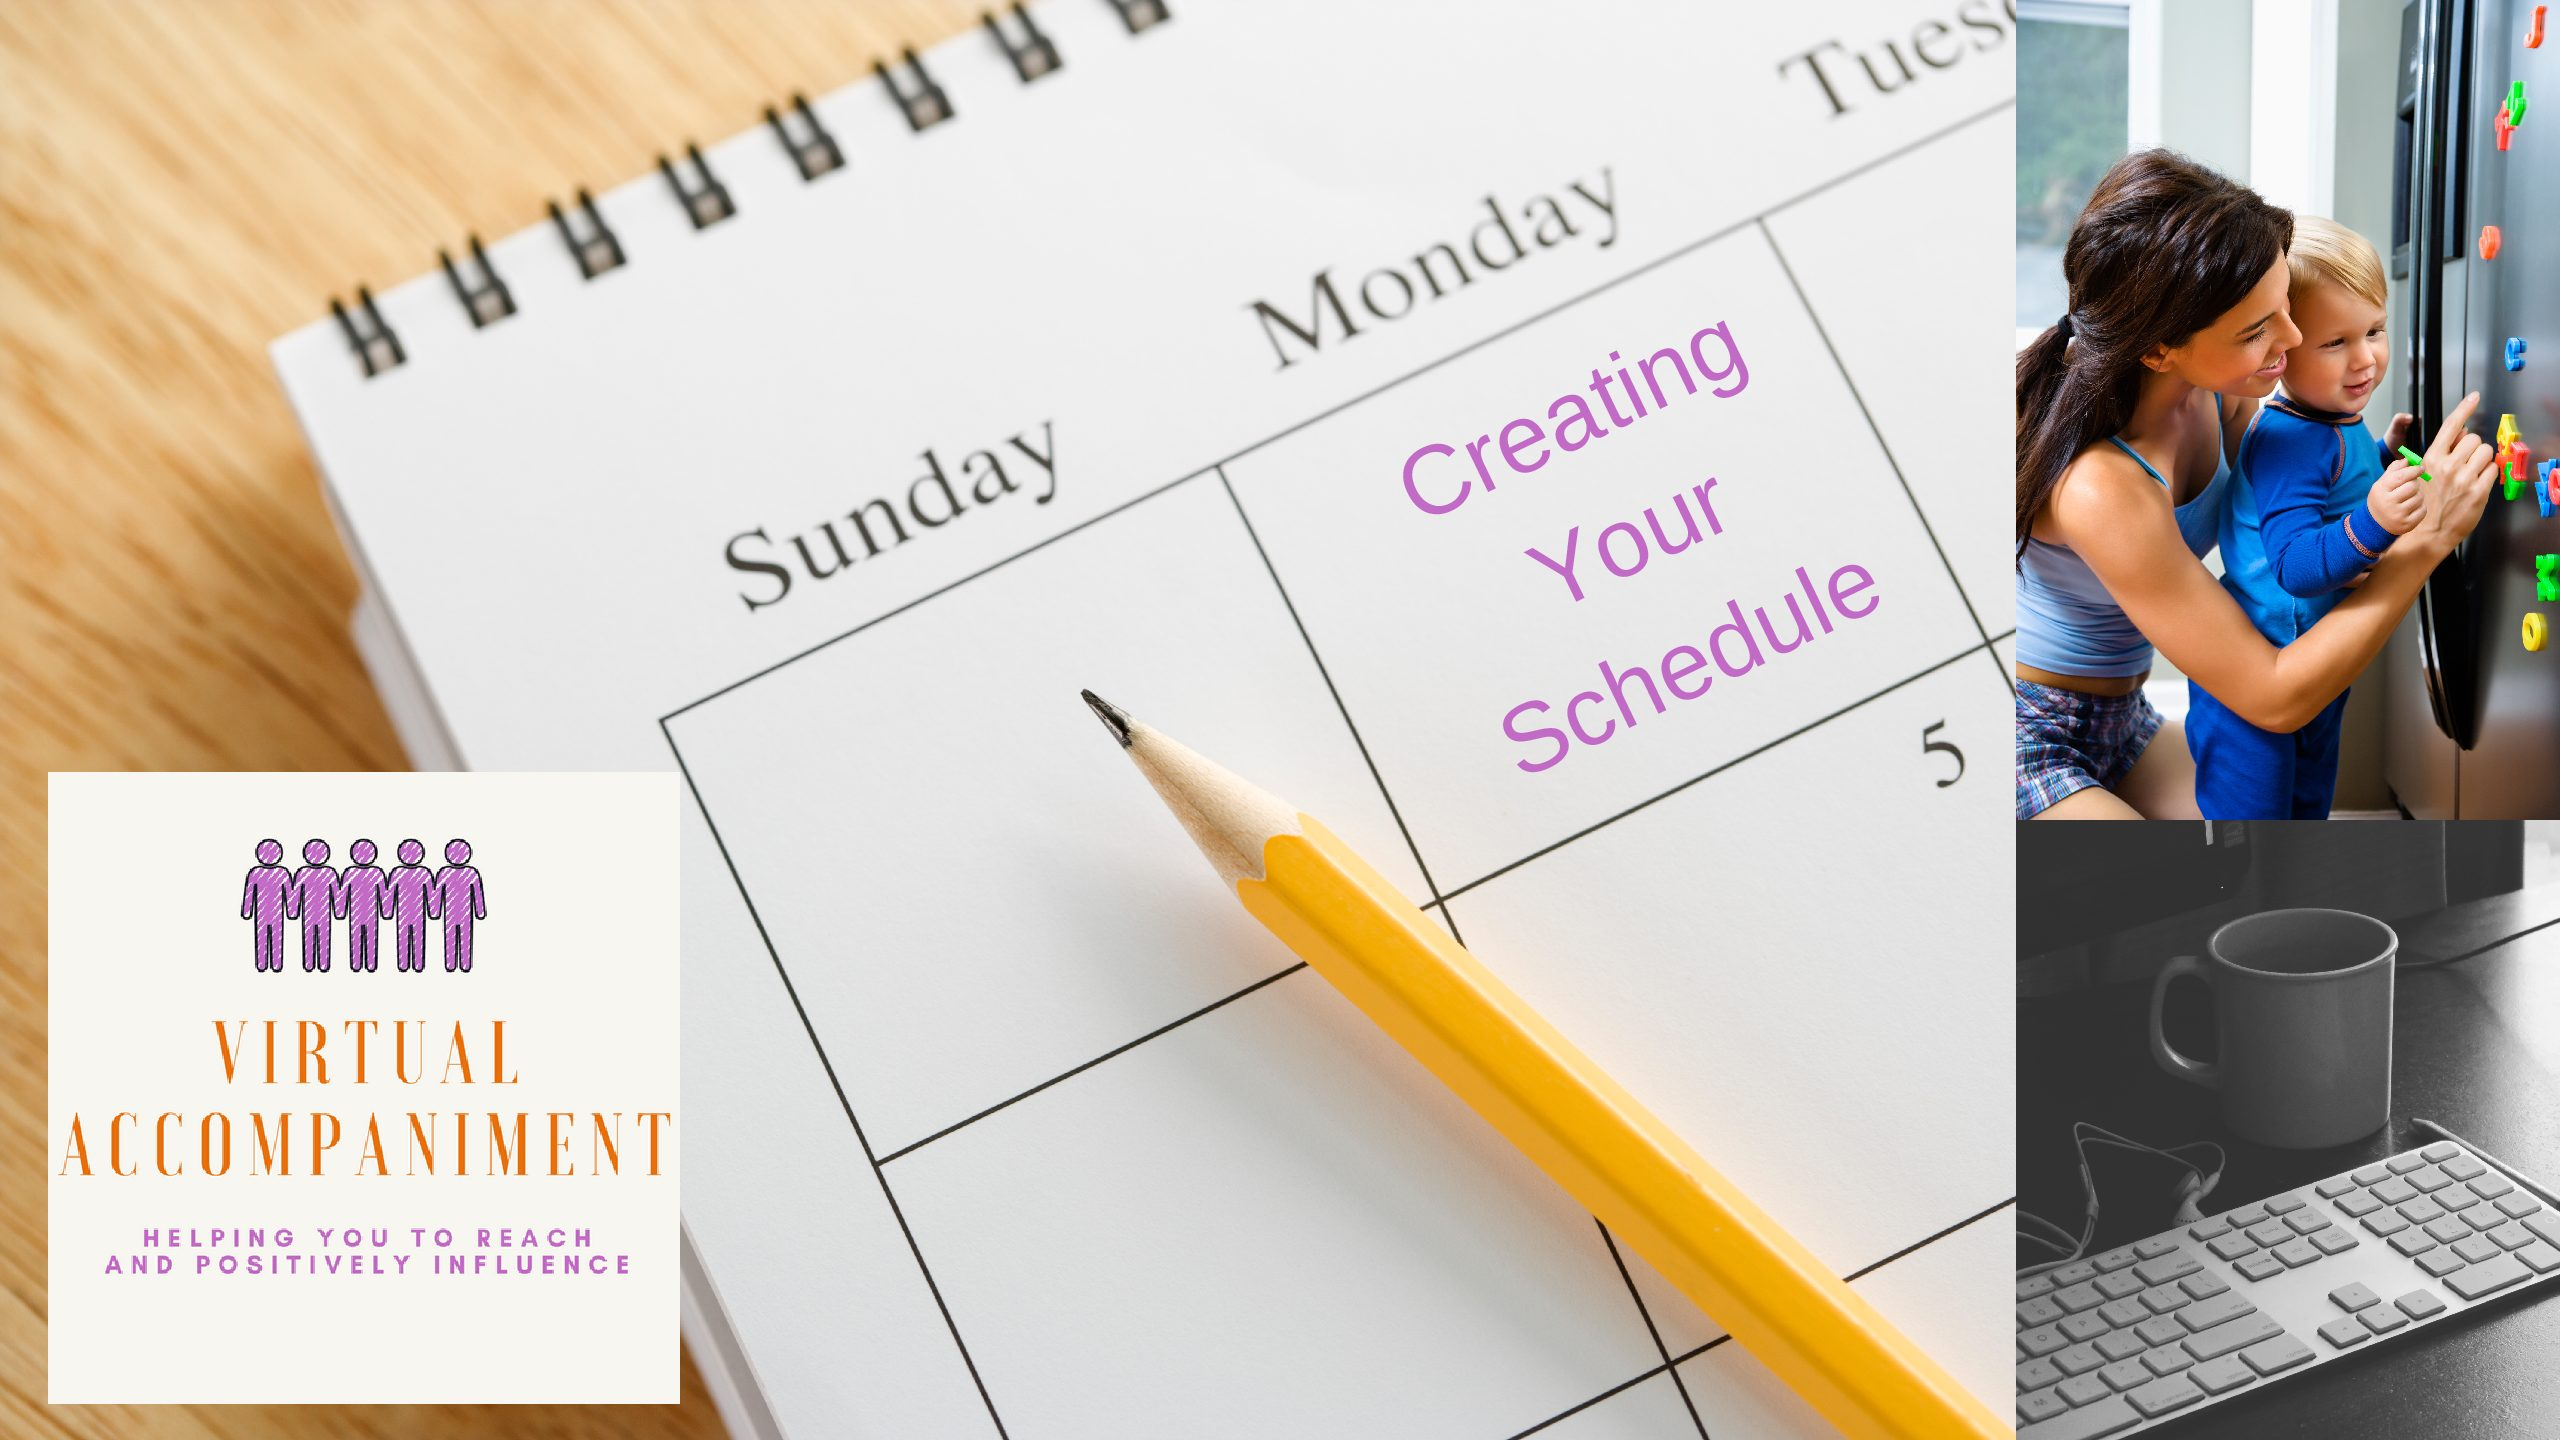 Creating Your Schedule as a Working Mom